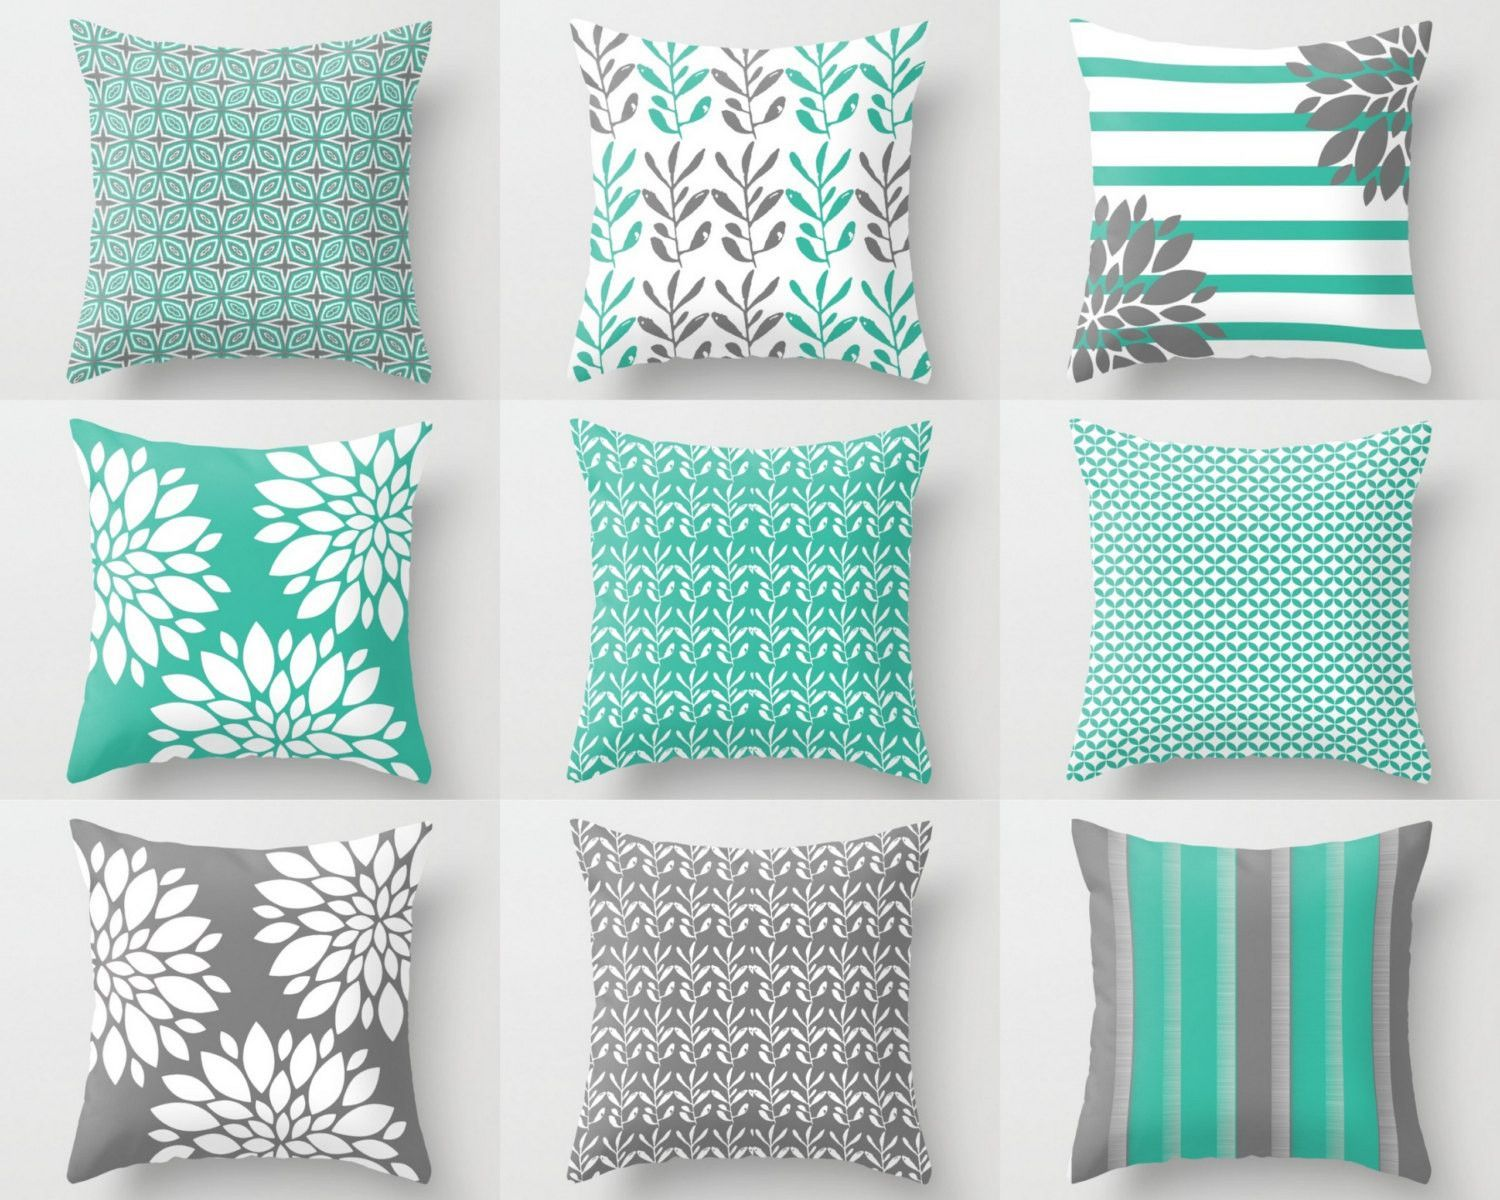 Pillow Covers Throw Pillow Covers Turquoise Grey White Spring Pillow Covers Mix And Match Decorative Turquoise Throw Pillows Spring Pillows Throw Pillows